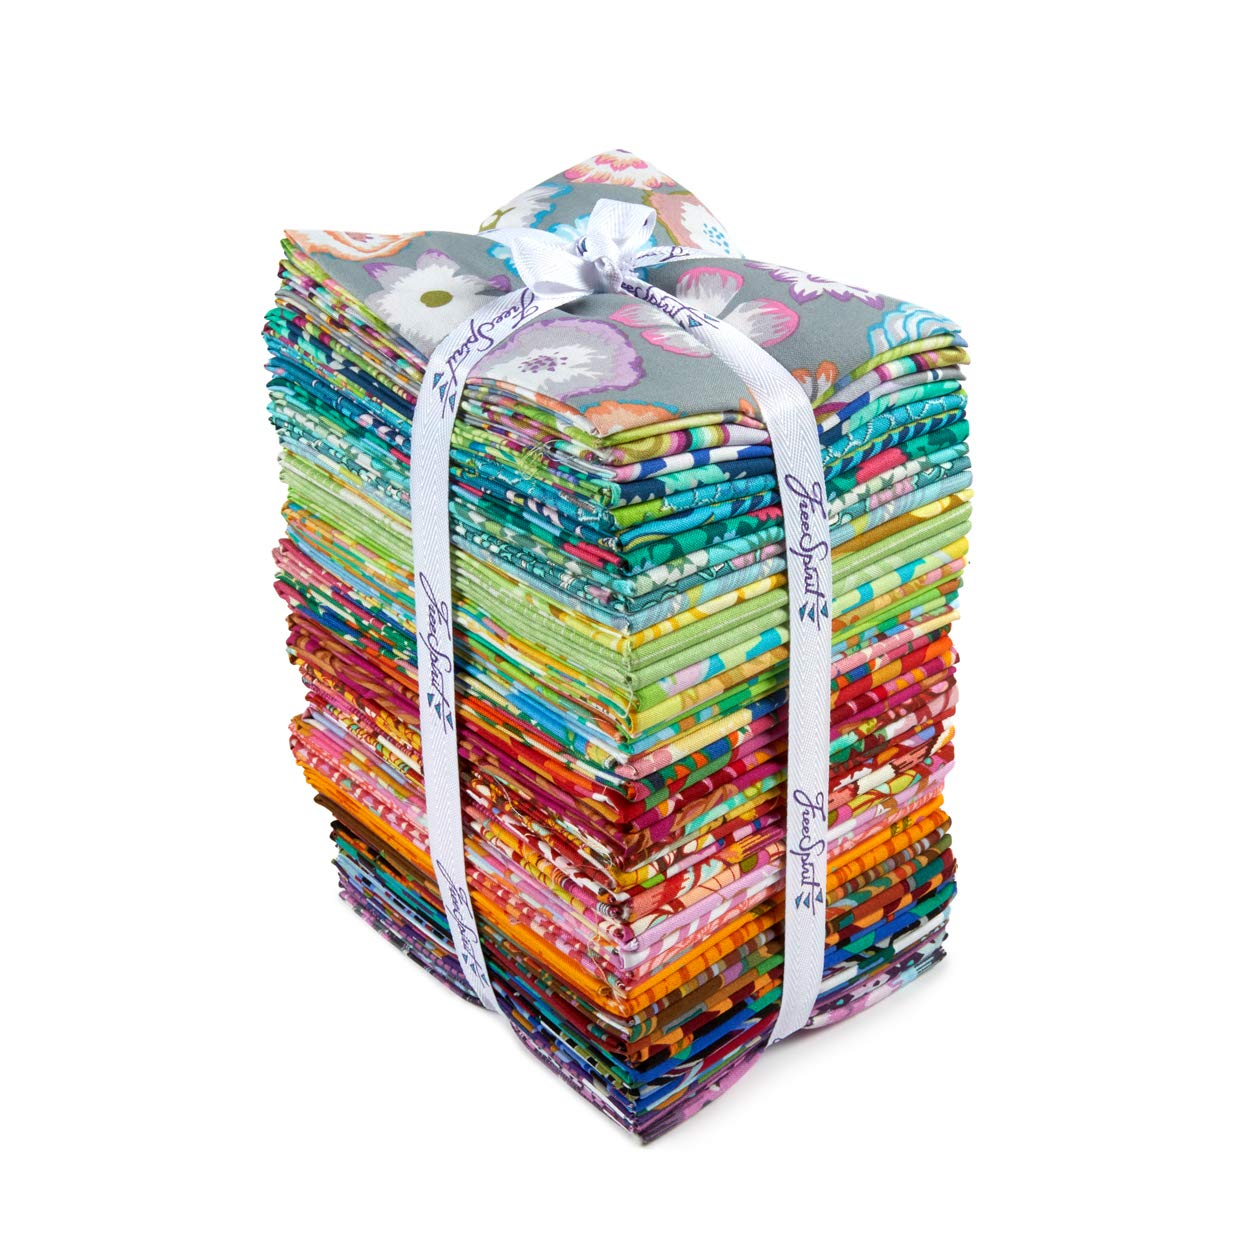 FreeSpirit Fabrics 50 Piece Designer Fat Quarter Fabric, Multicolor by Free Spirit Fabrics (Image #2)